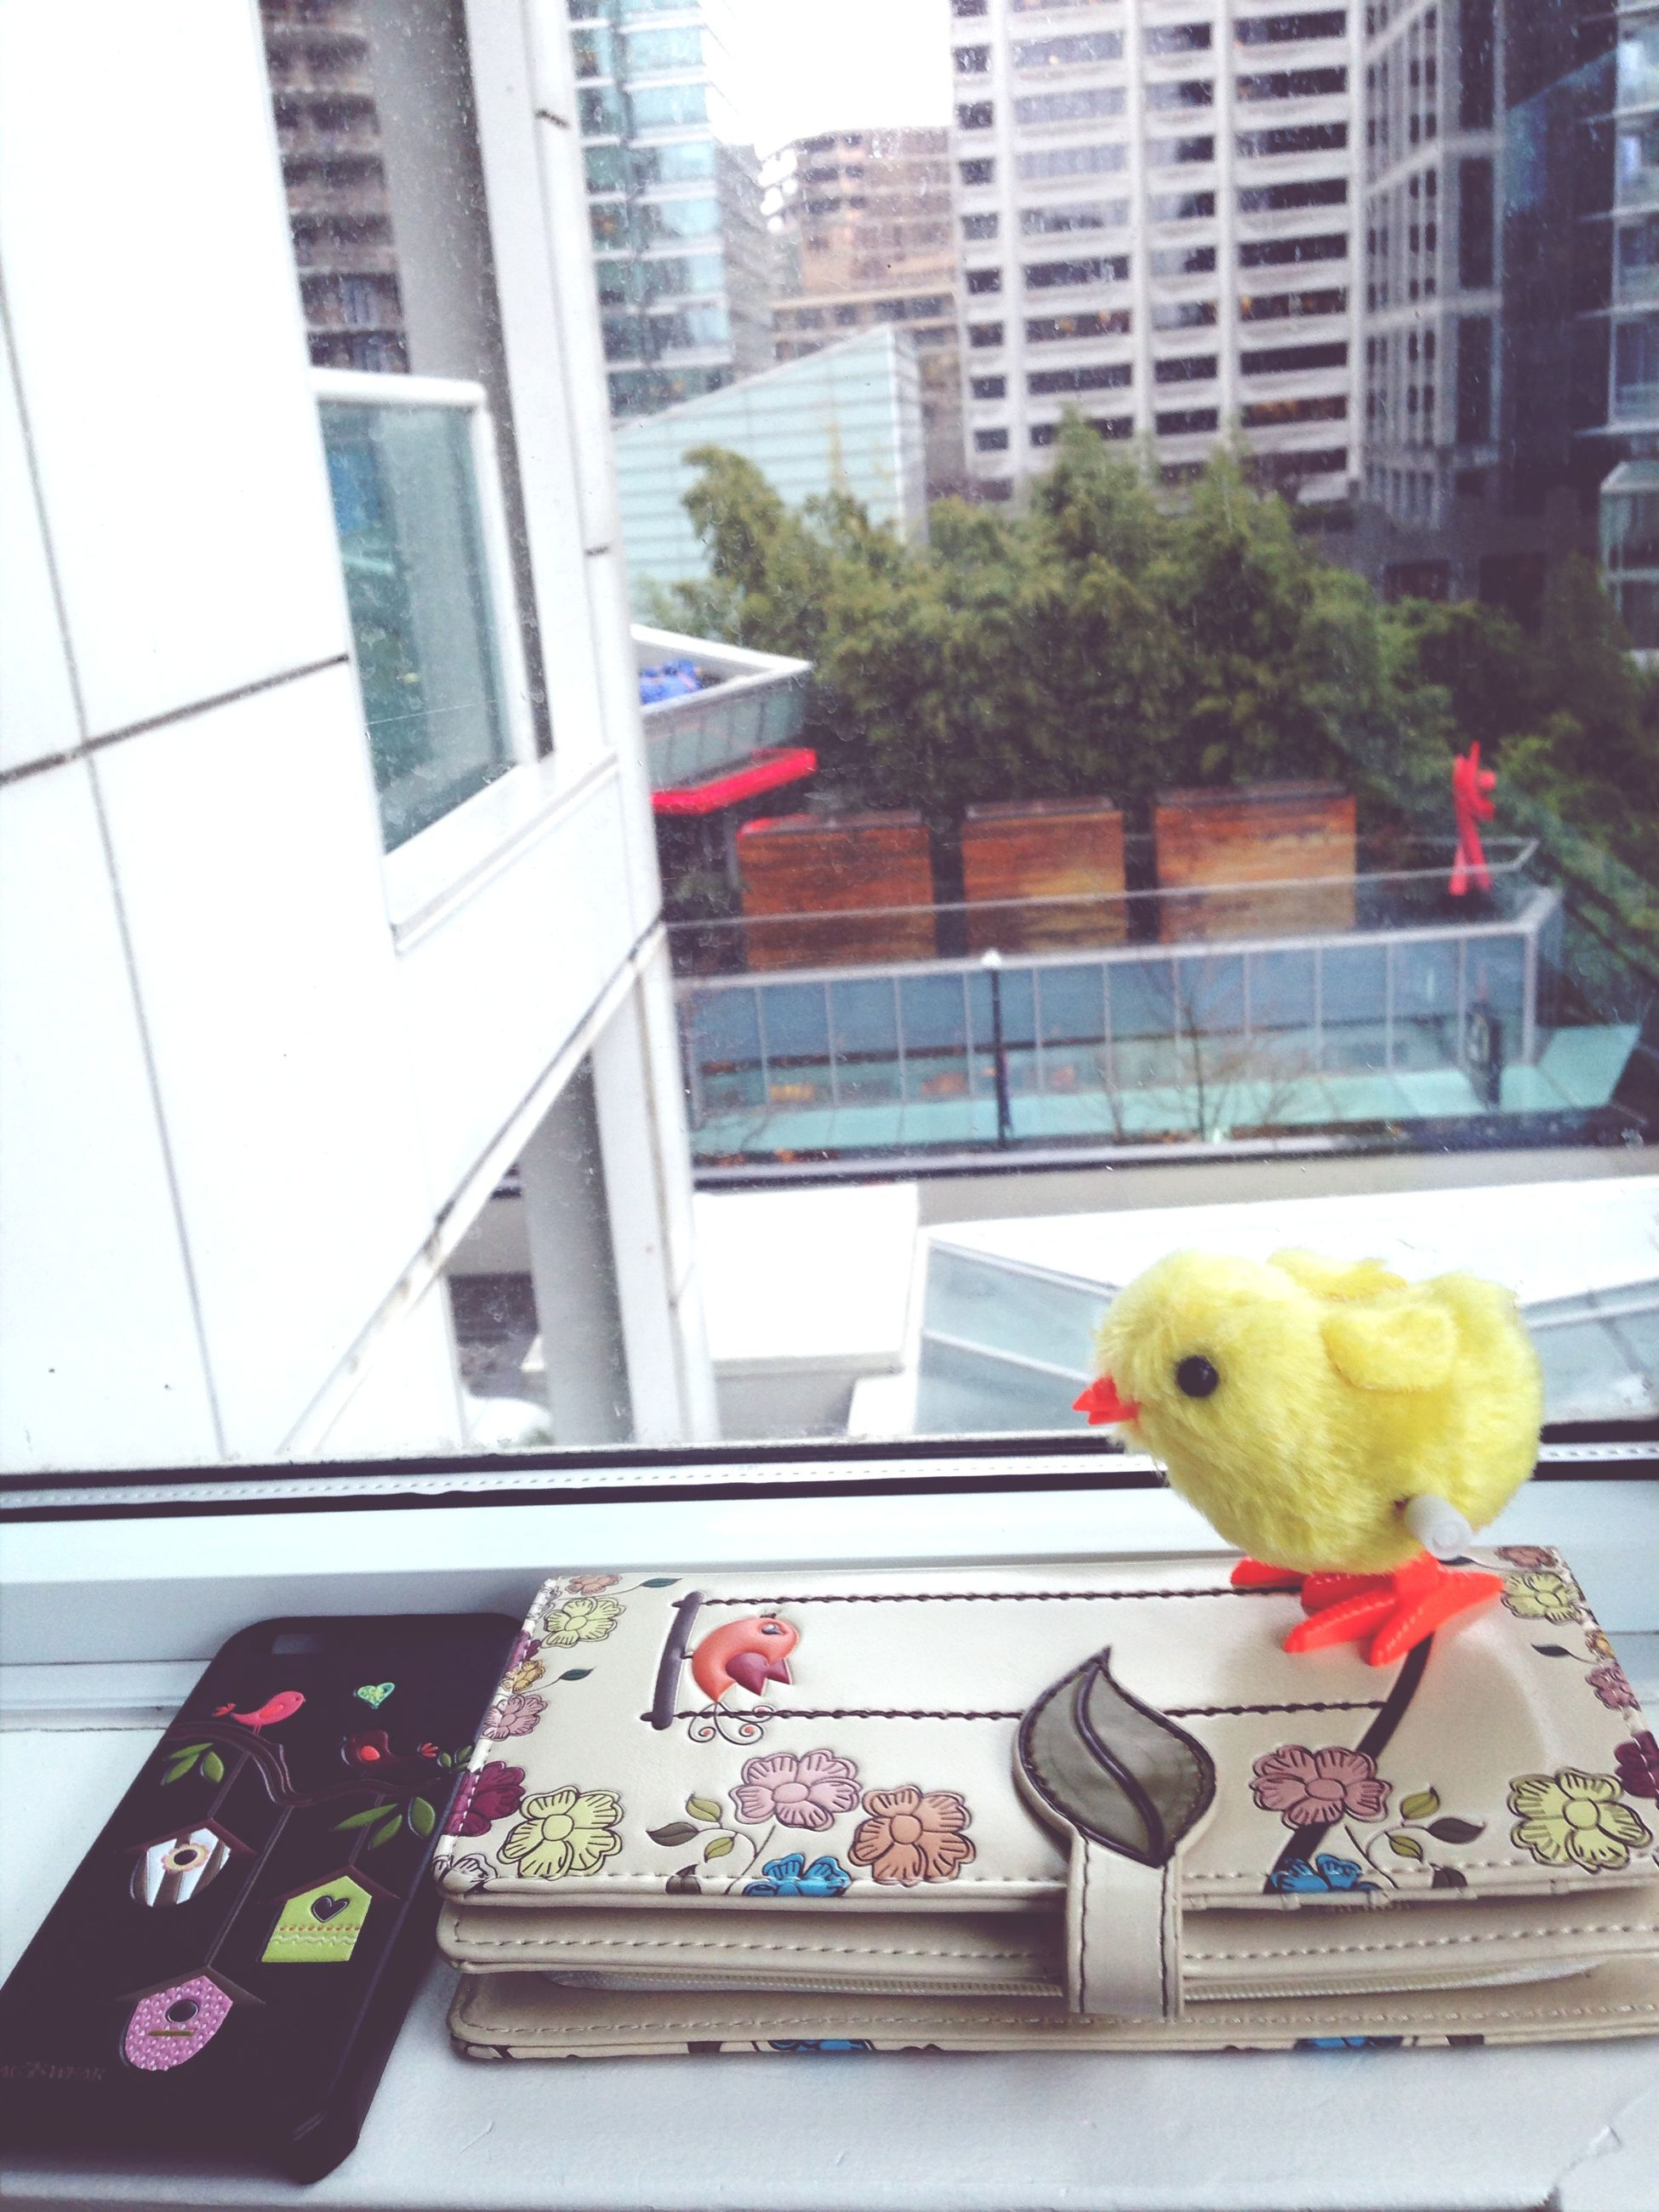 building exterior, architecture, built structure, animal representation, window, city, bird, multi colored, building, day, toy, yellow, low angle view, childhood, outdoors, art, no people, art and craft, balcony, glass - material